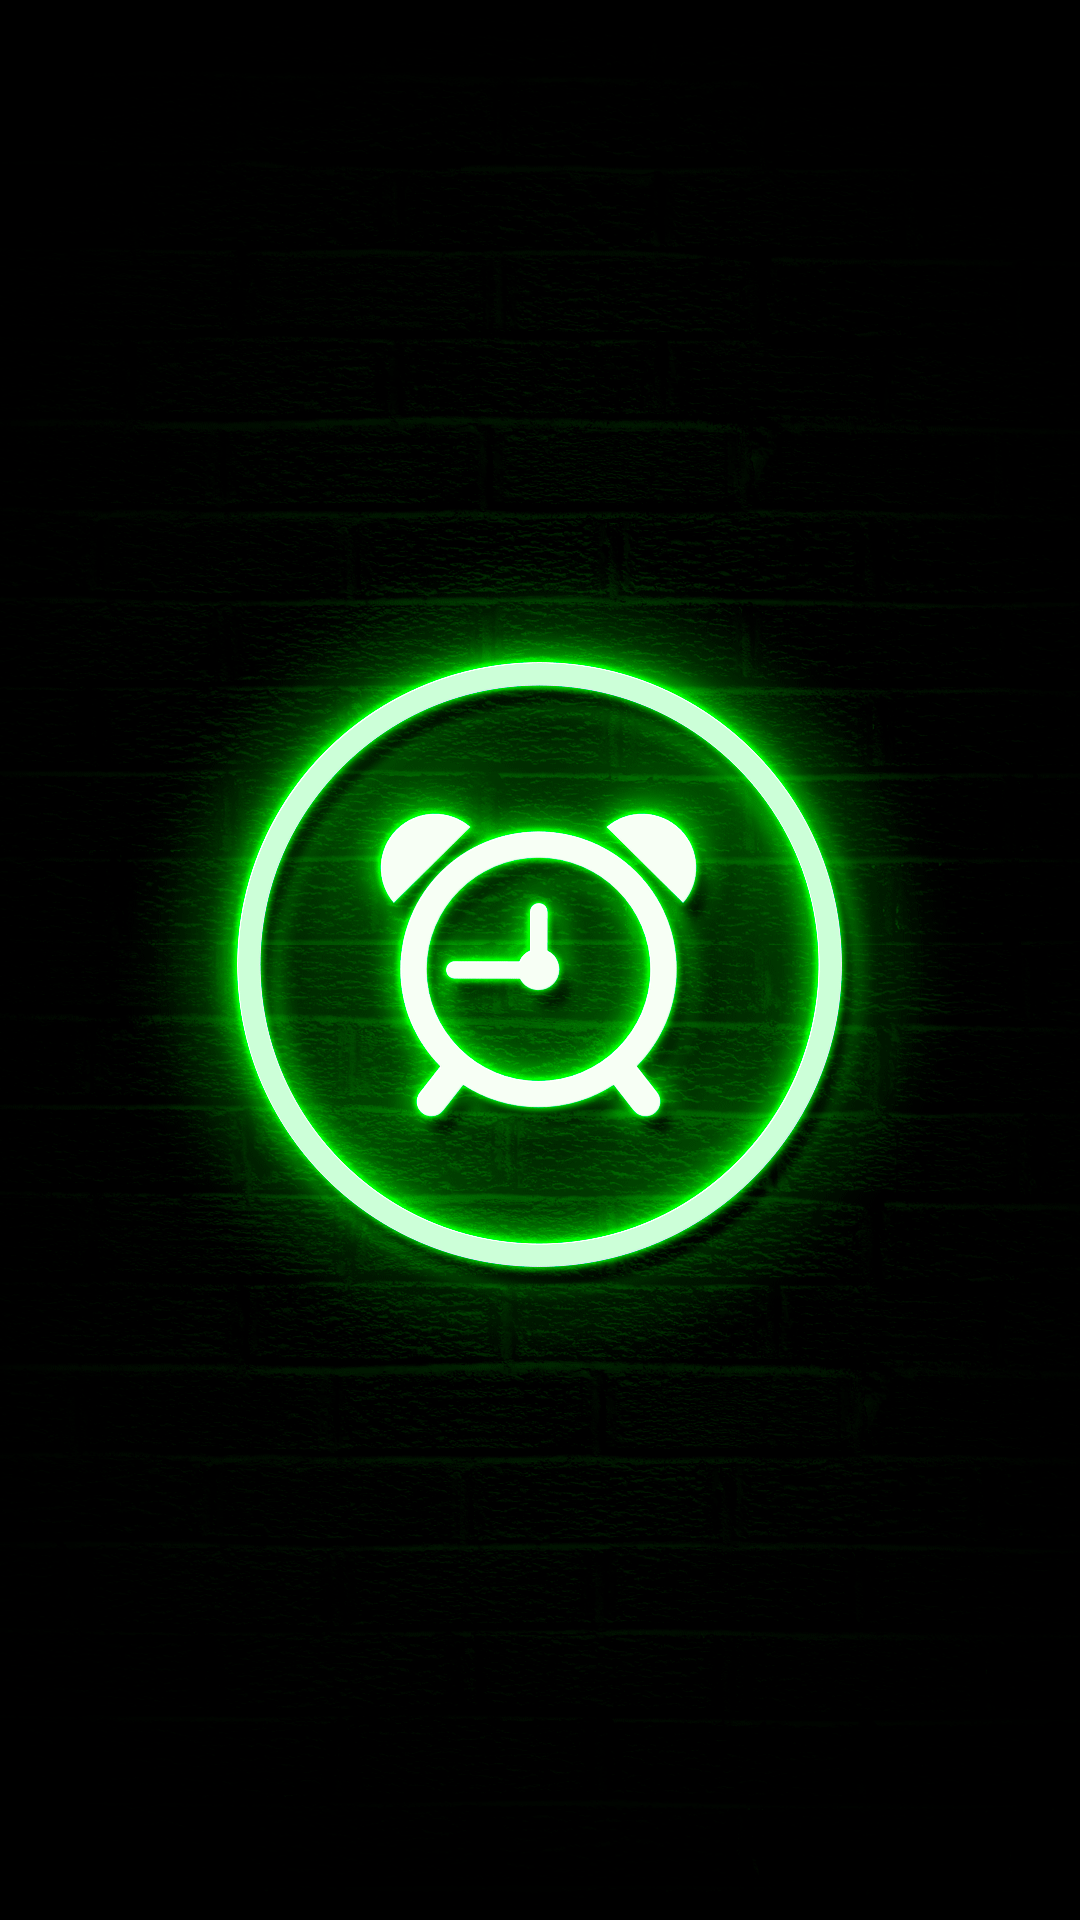 Green Neon Highlight Instagram Covers Instagram Highlight Icons Story Neon Templates Story Instagram Nn0241 In 2020 Instagram Highlight Icons Neon Cool Neon Signs